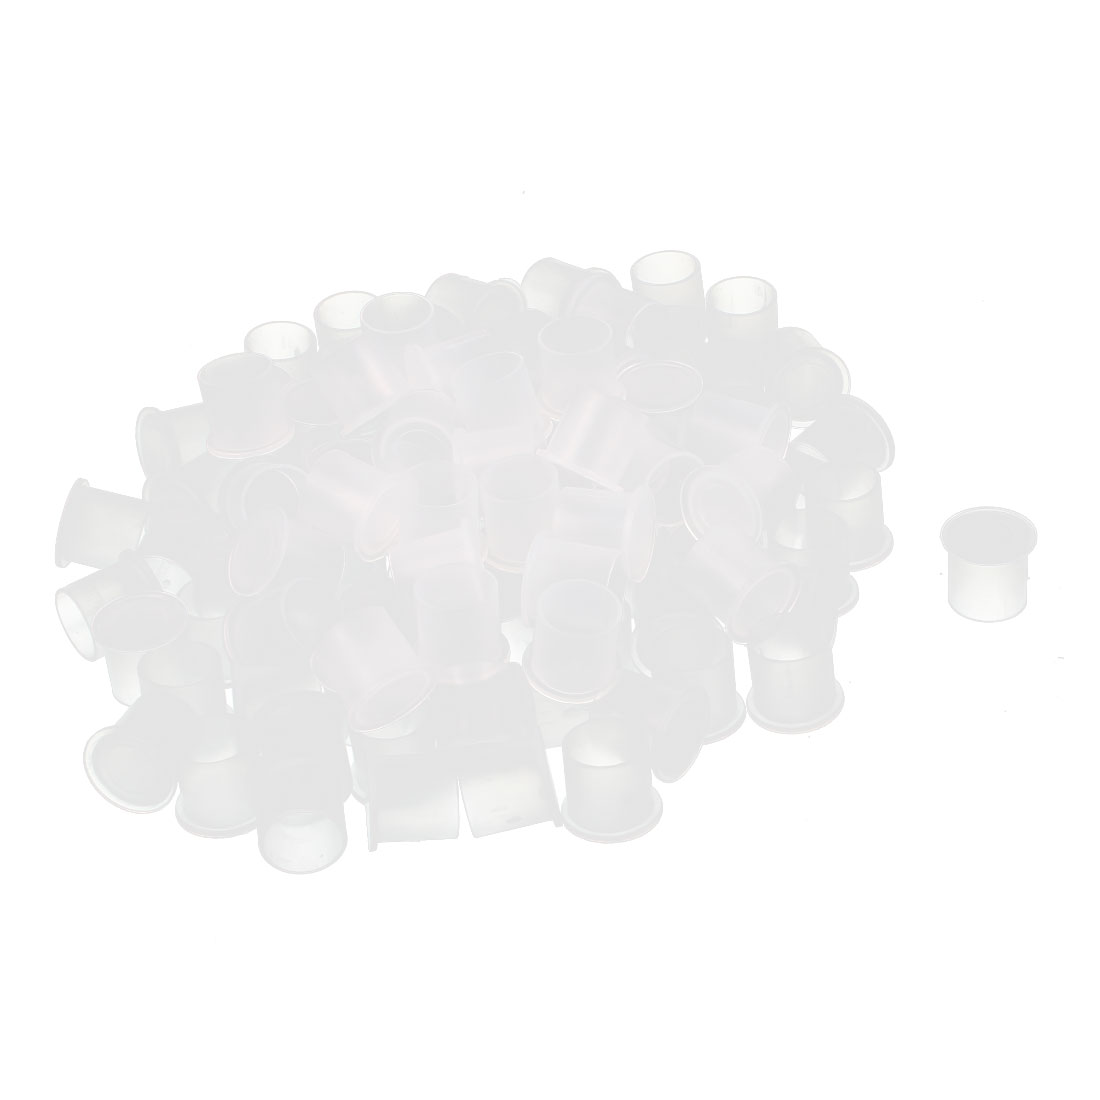 100Pcs 10mm Inner Dia PVC Insulated End Cap Wire Cable Tube Cover Protector